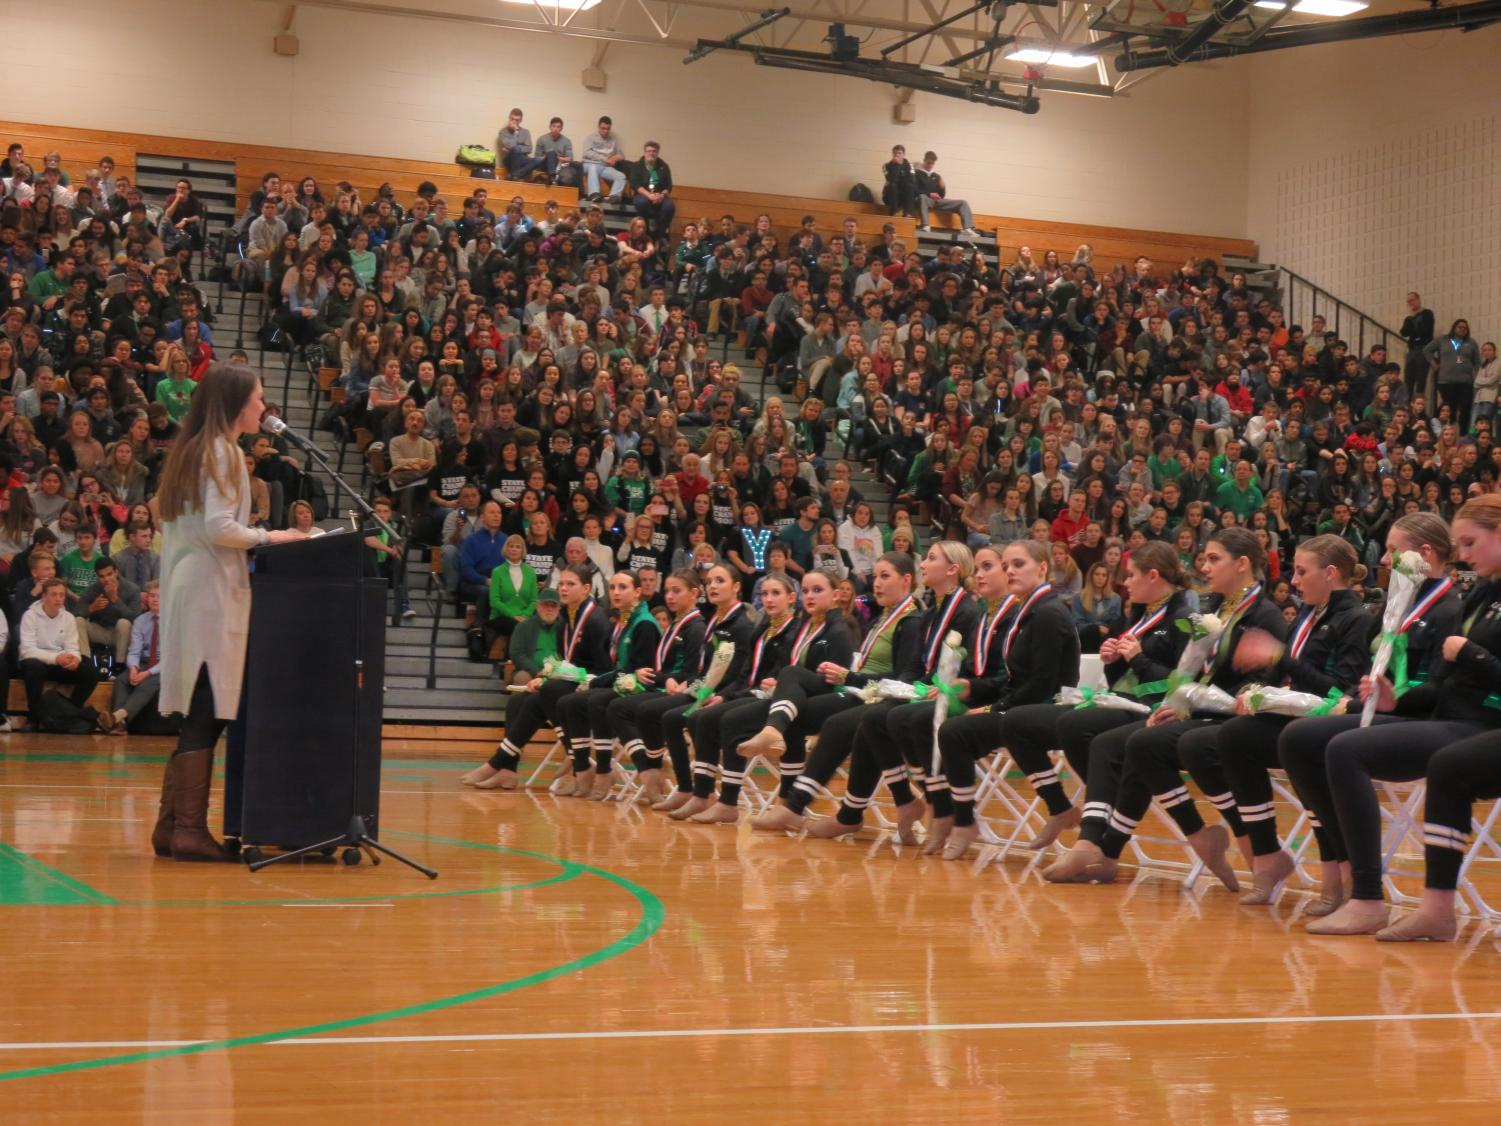 Coach Kristen Baron honors the poms team at the pep rally celebrating their 2018 state championship. Feb. 2, 2018.